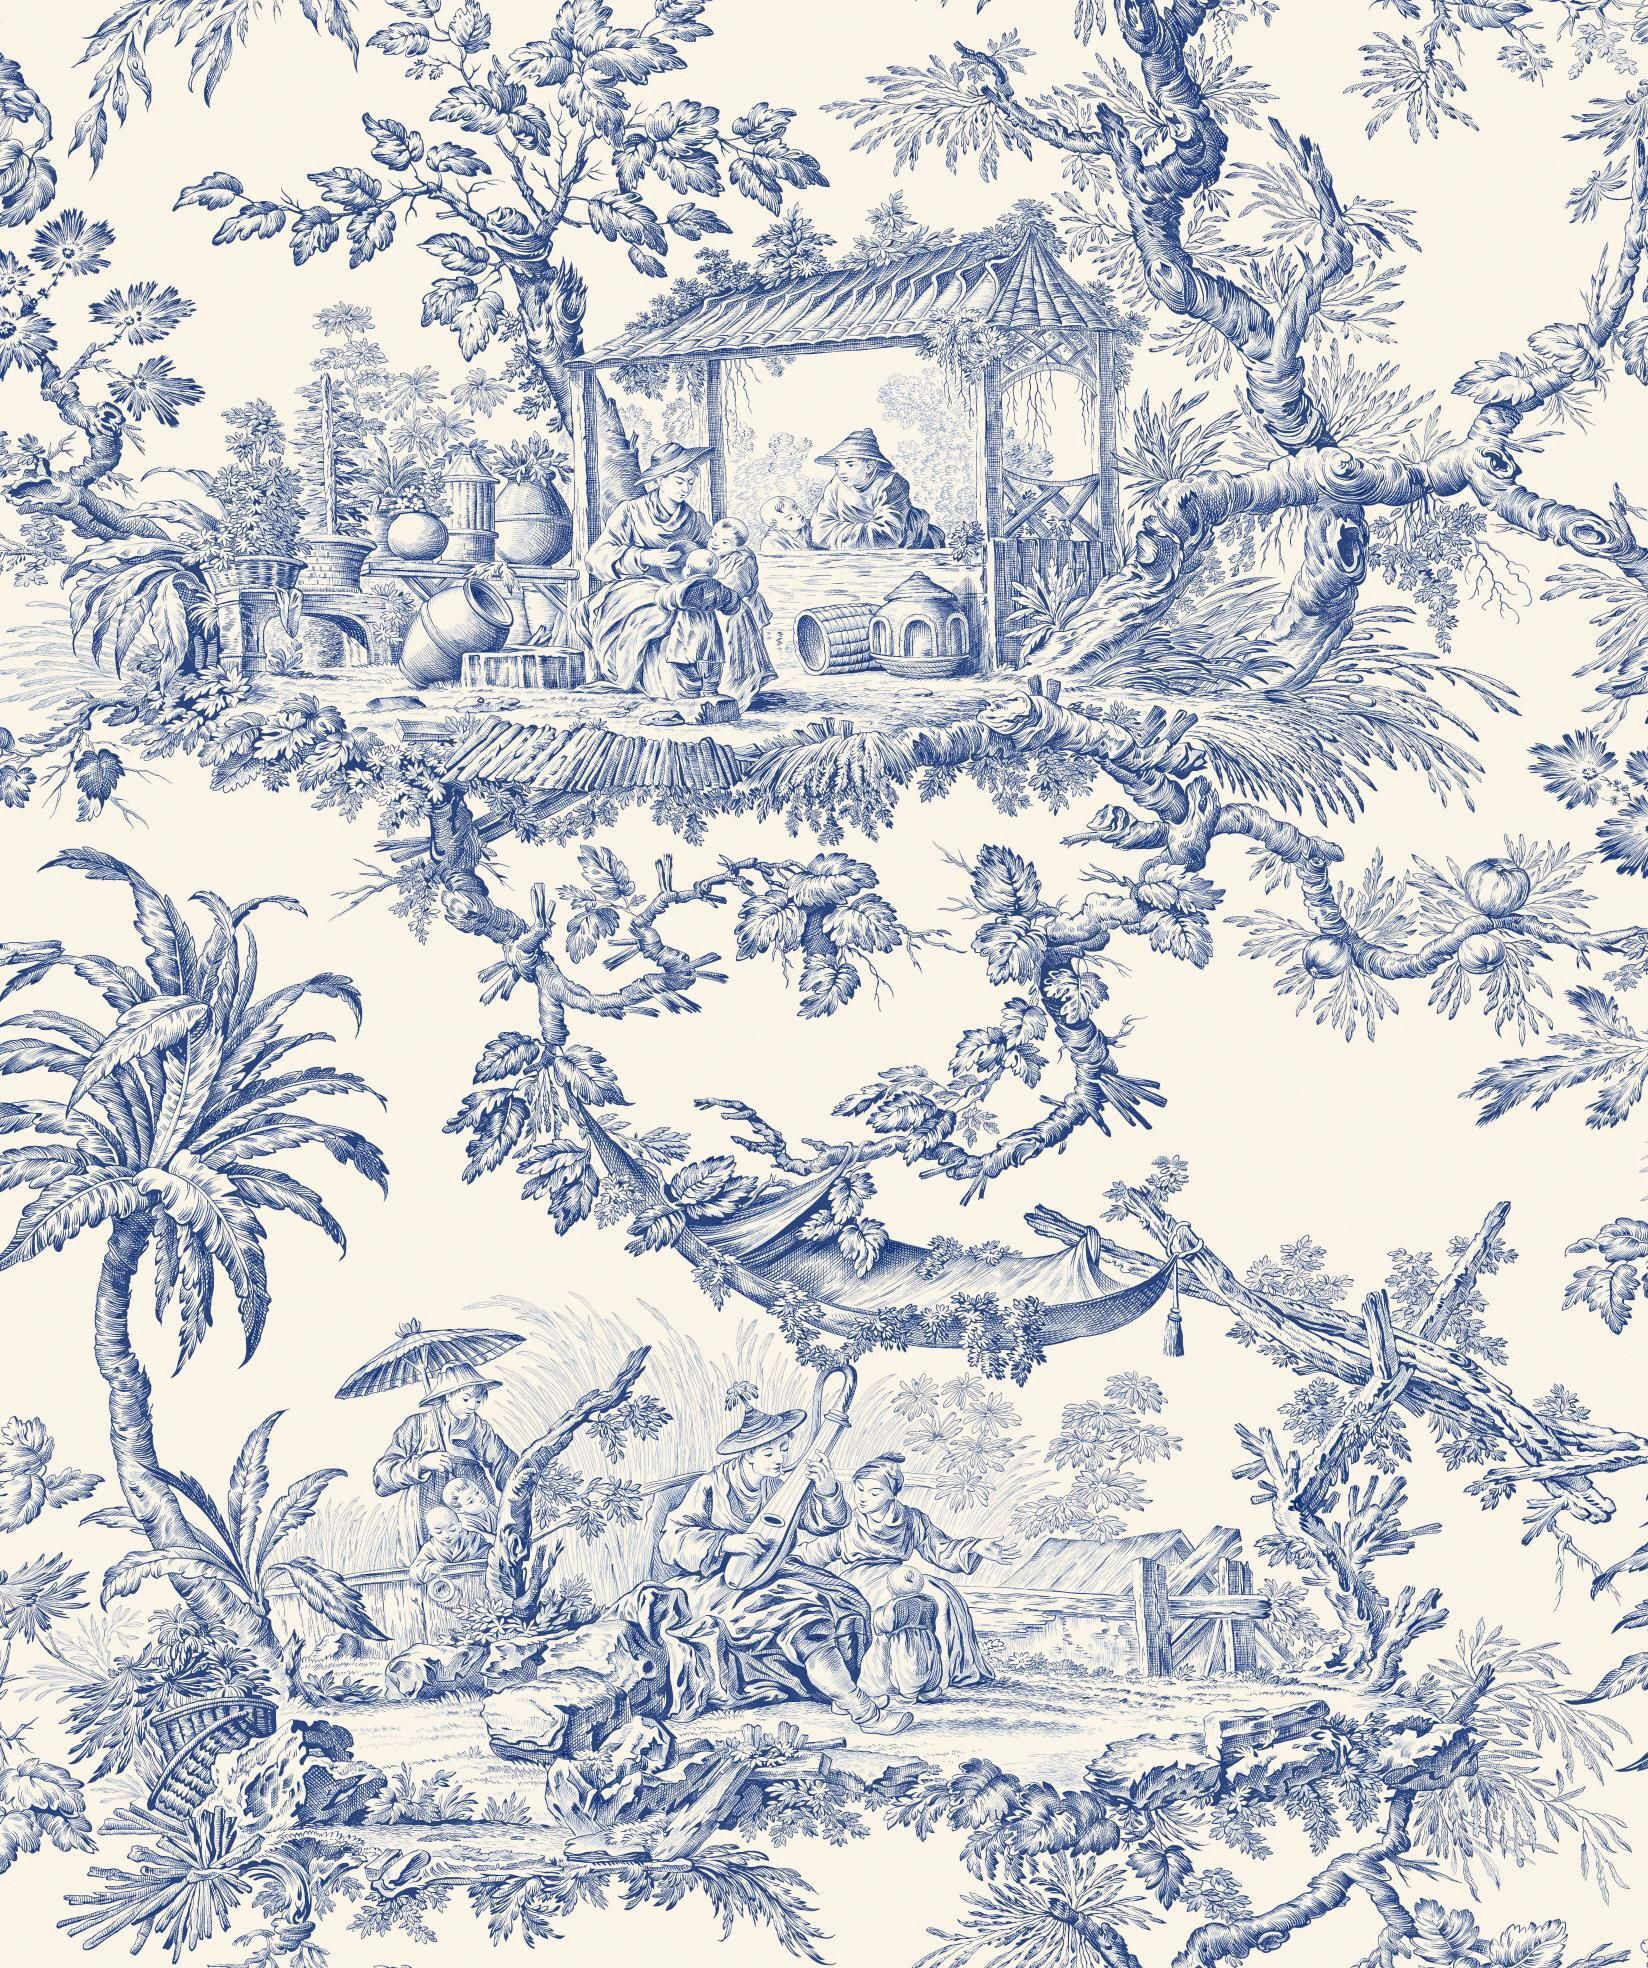 Toile De Jouy Beautiful Print Could Be Printed And Put Into Picture Frames